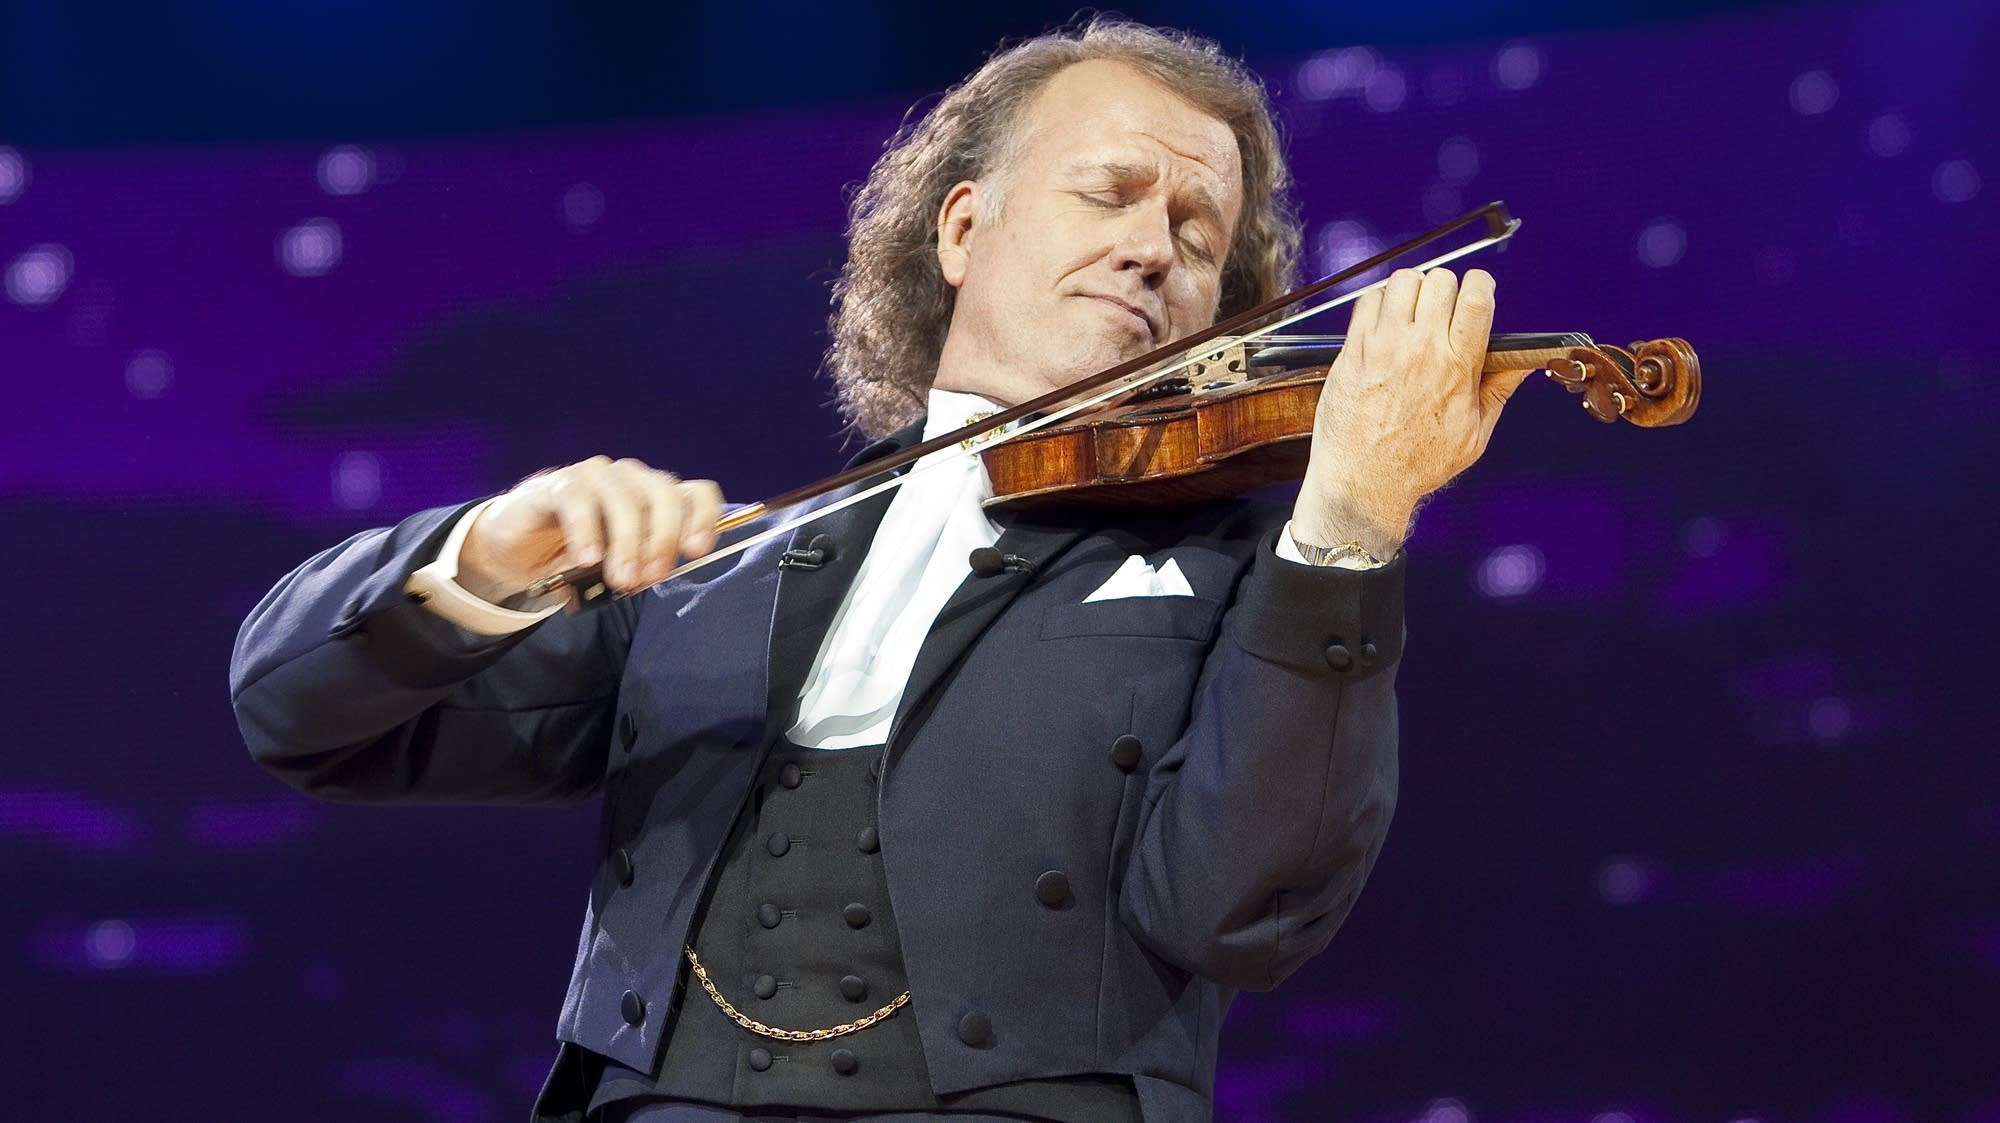 Andre Rieu in performance